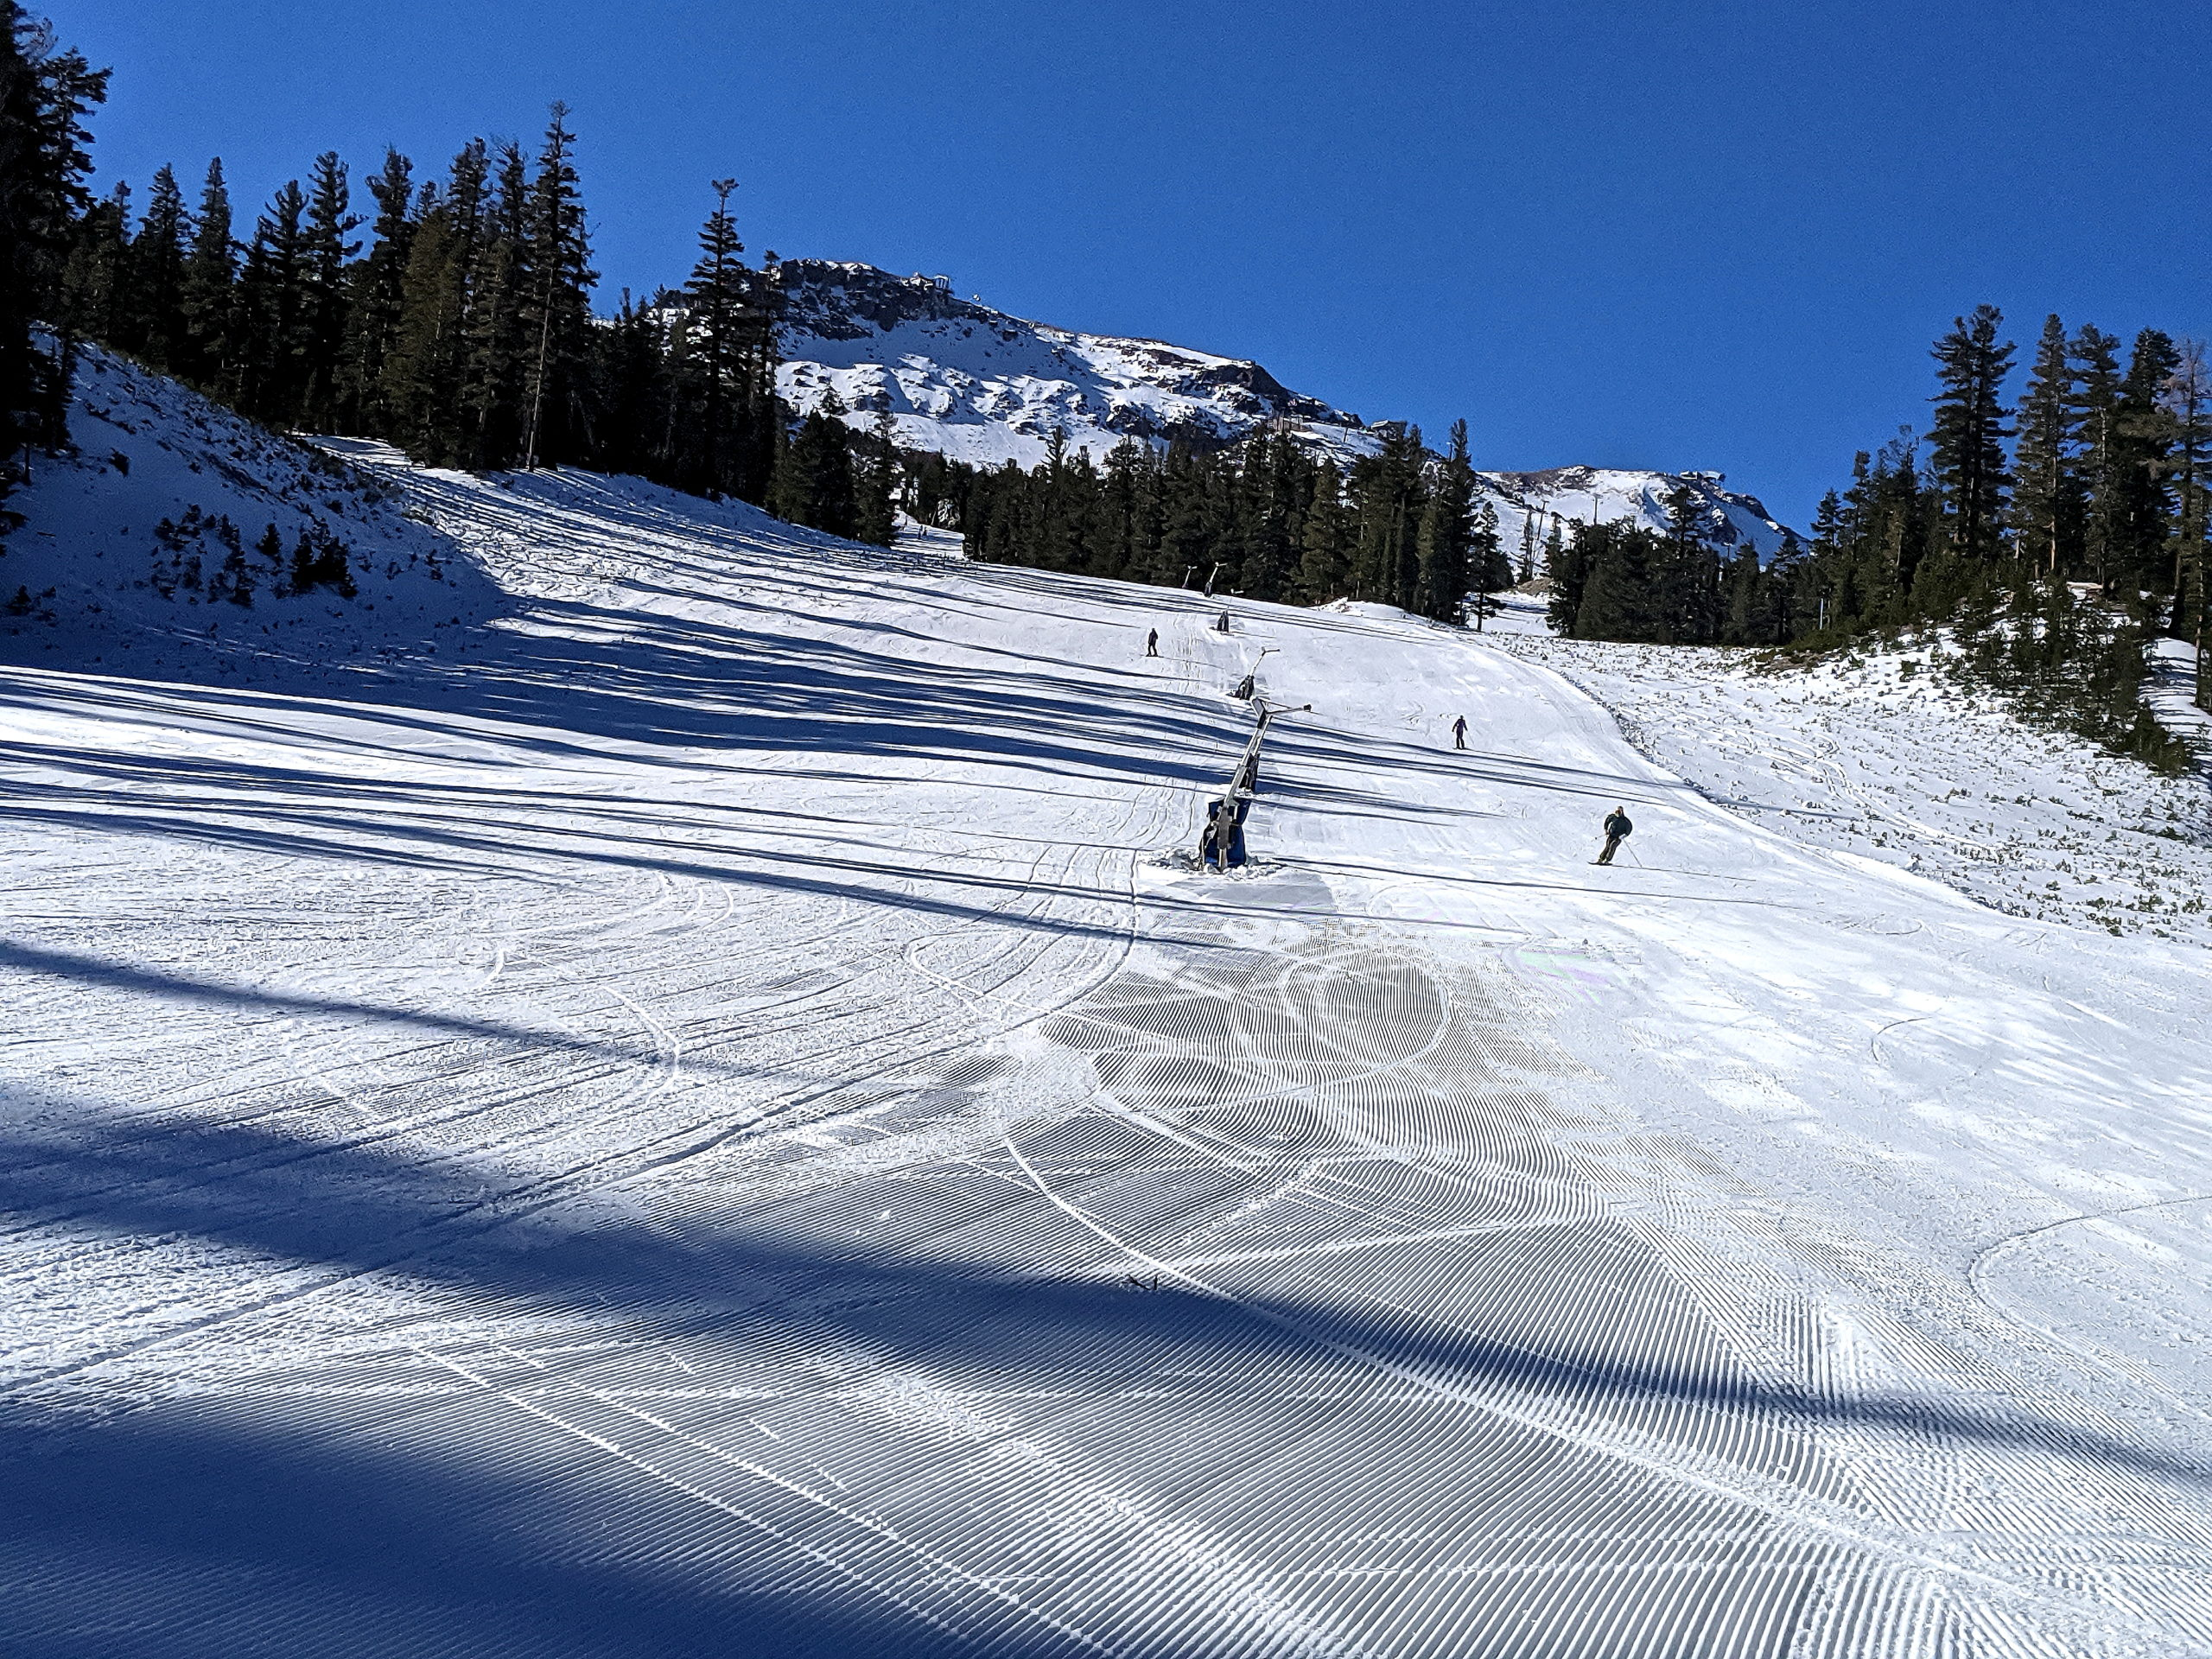 Lower Roller Coaster at Chair 4 - 11-30-2020